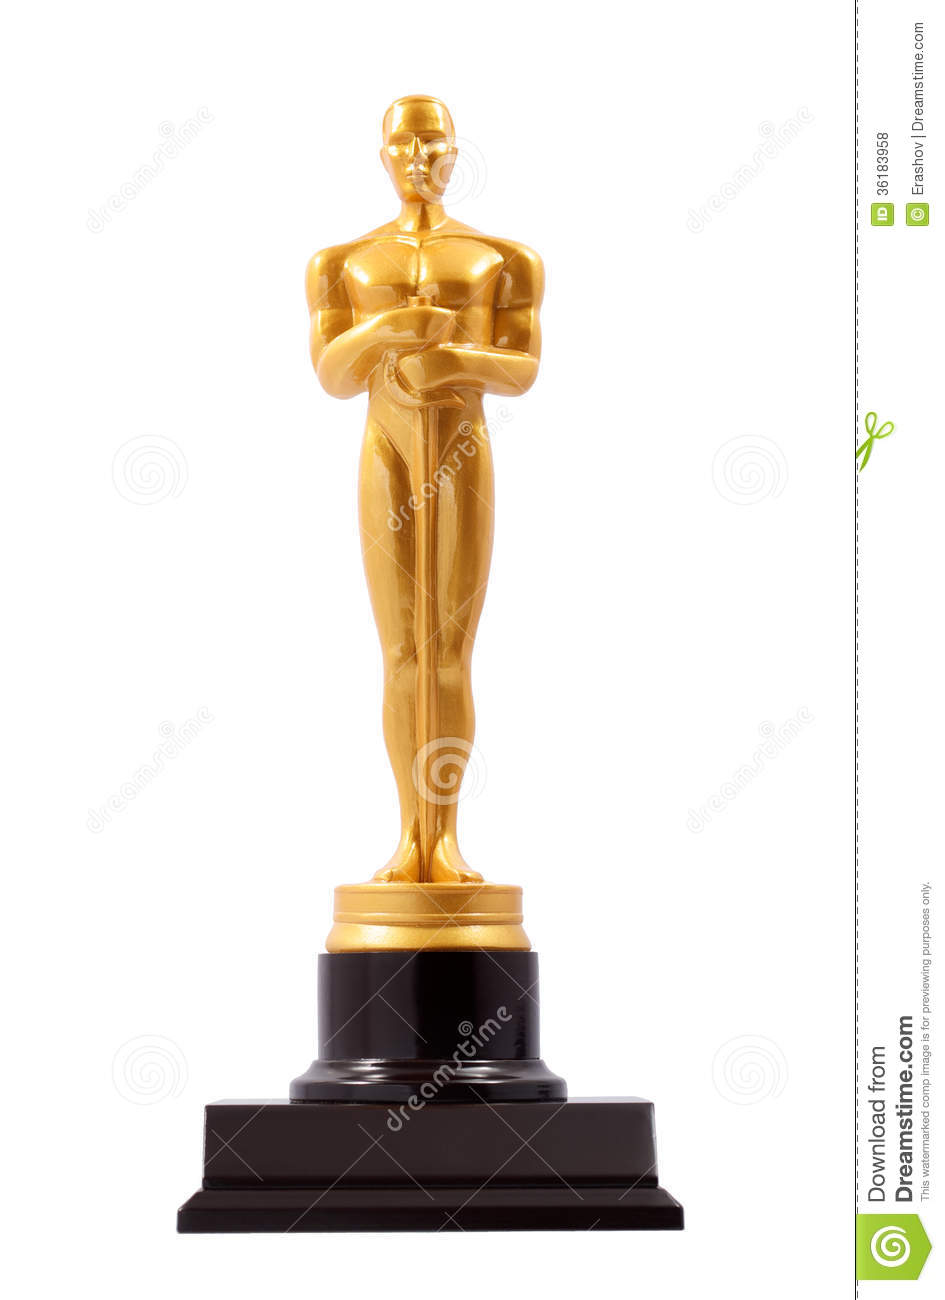 494963 moreover Oscar Statue Cliparts furthermore Royal Award Certificate Template in addition Silhouette Of Business People Men Vector also 1. on oscar awards background clipart